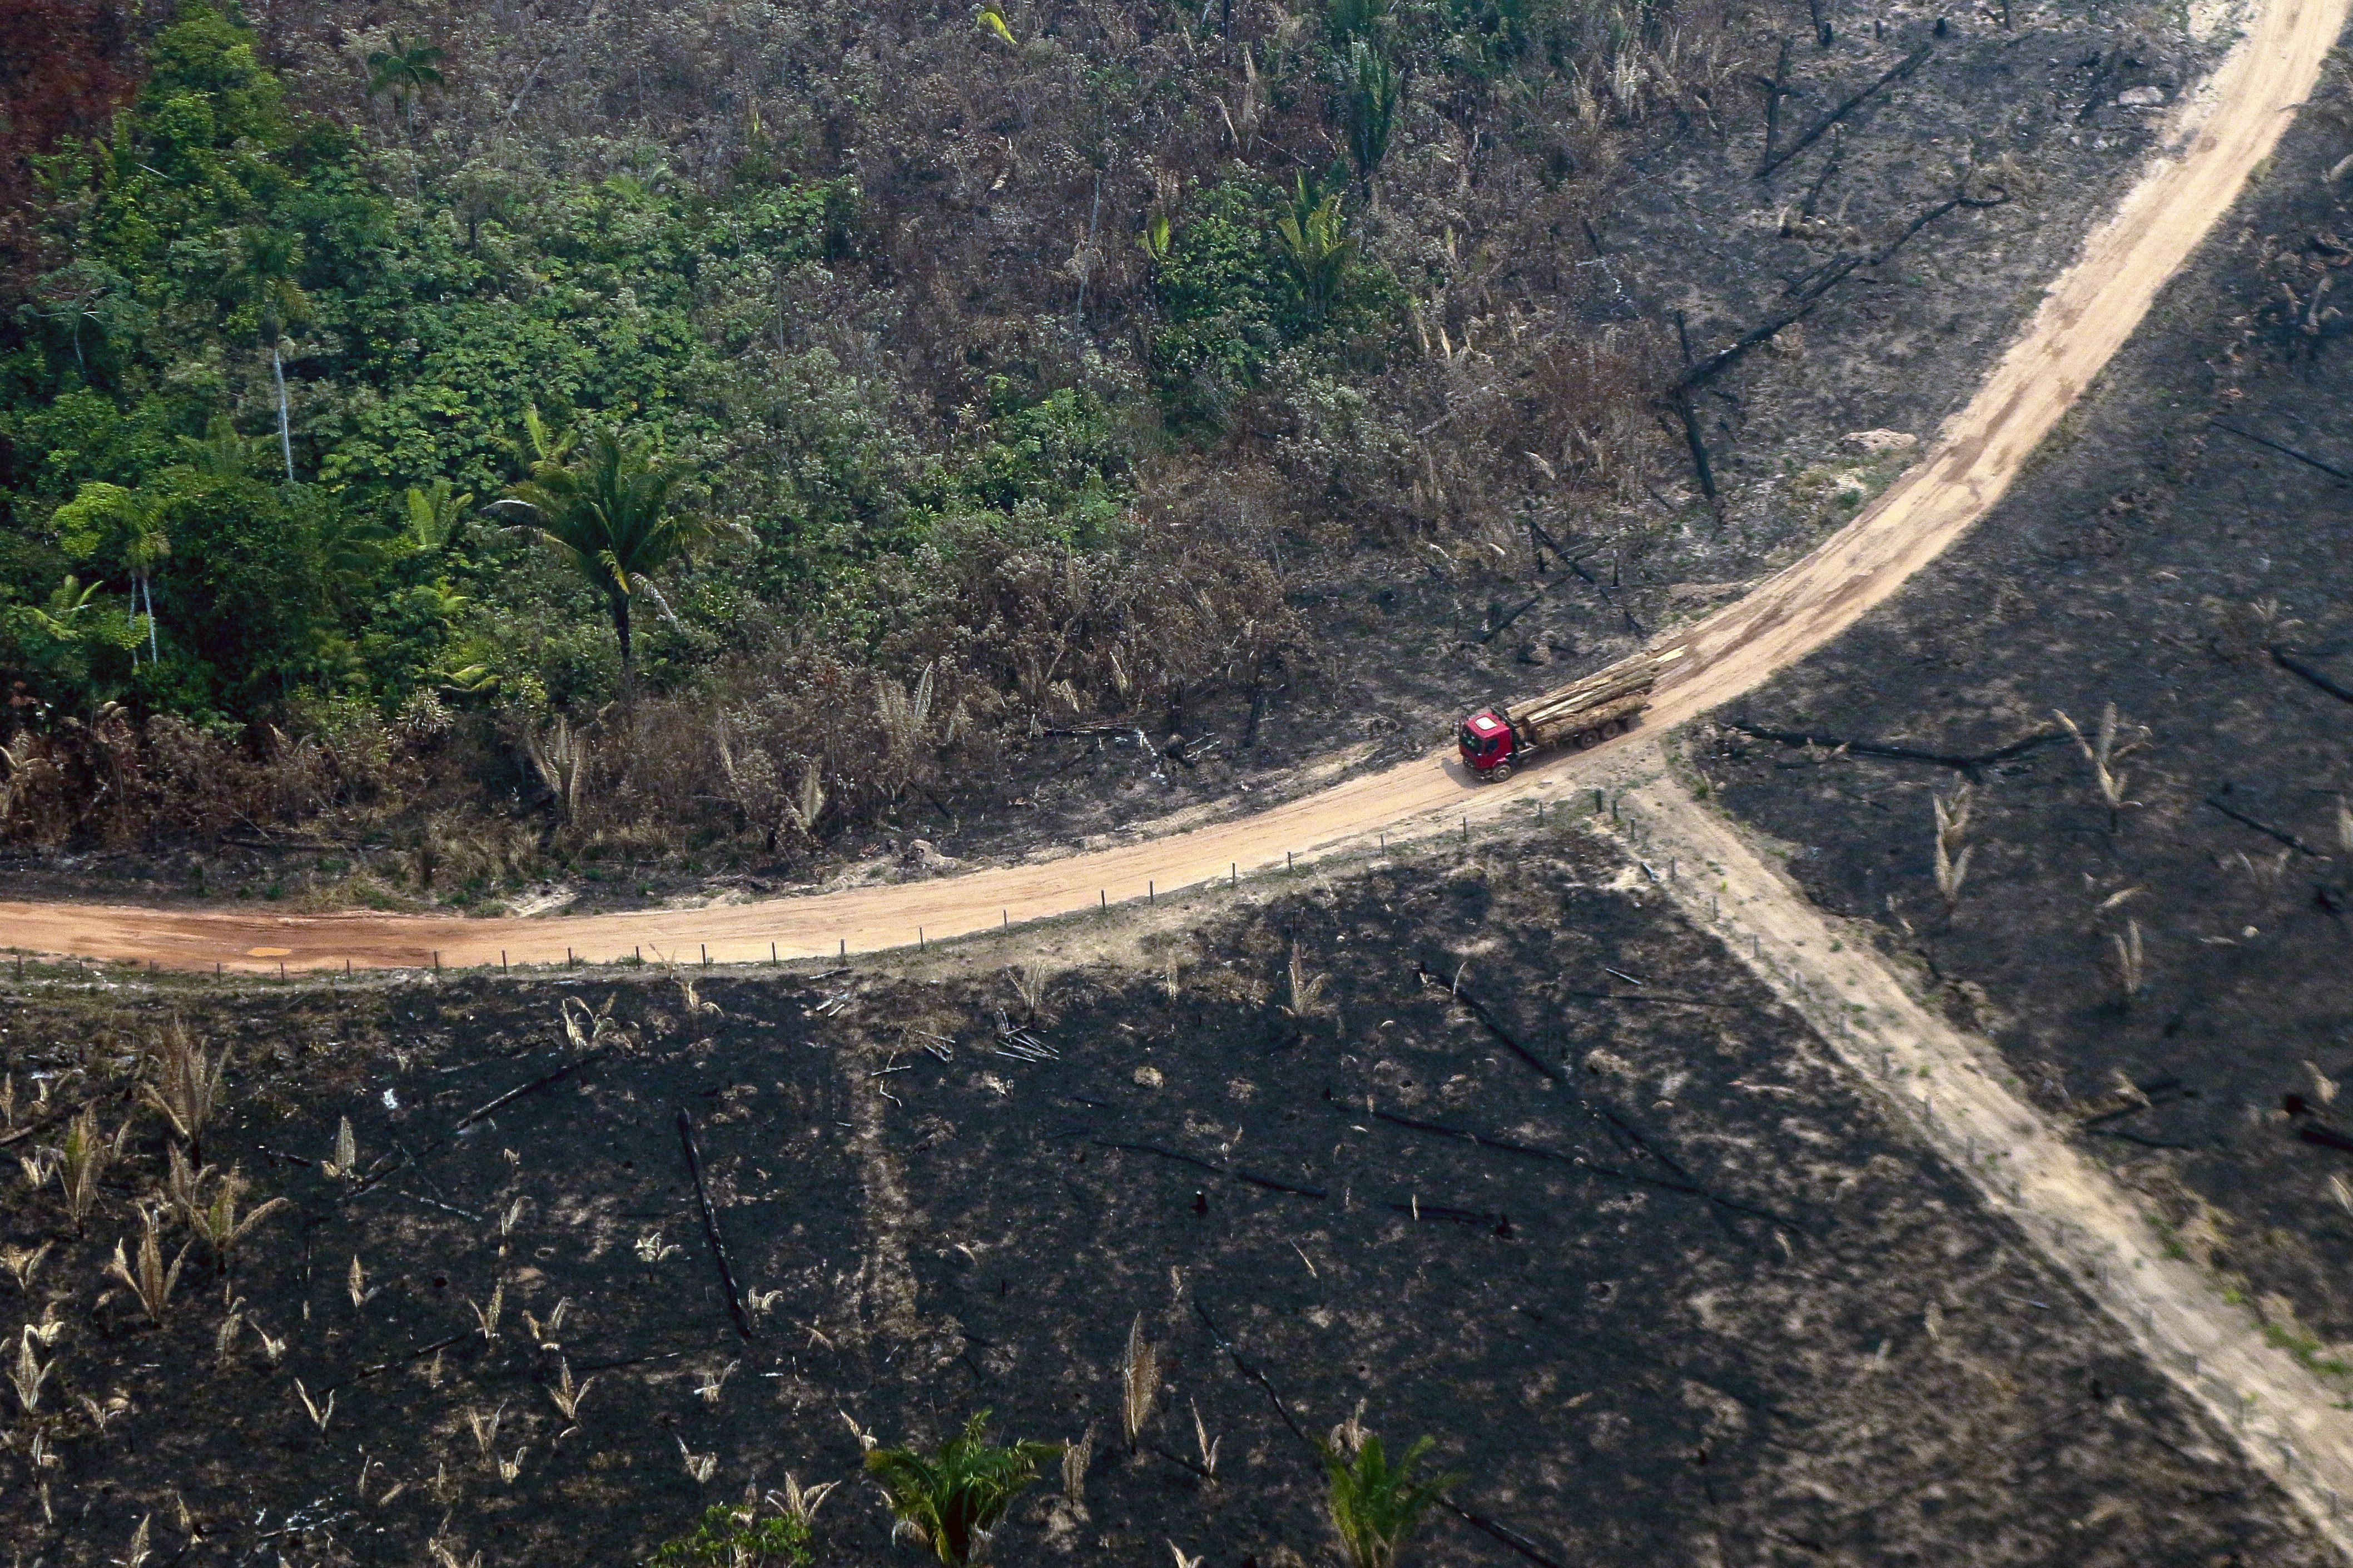 Amazon fires: Impact on rainforest in and around Brazil — in